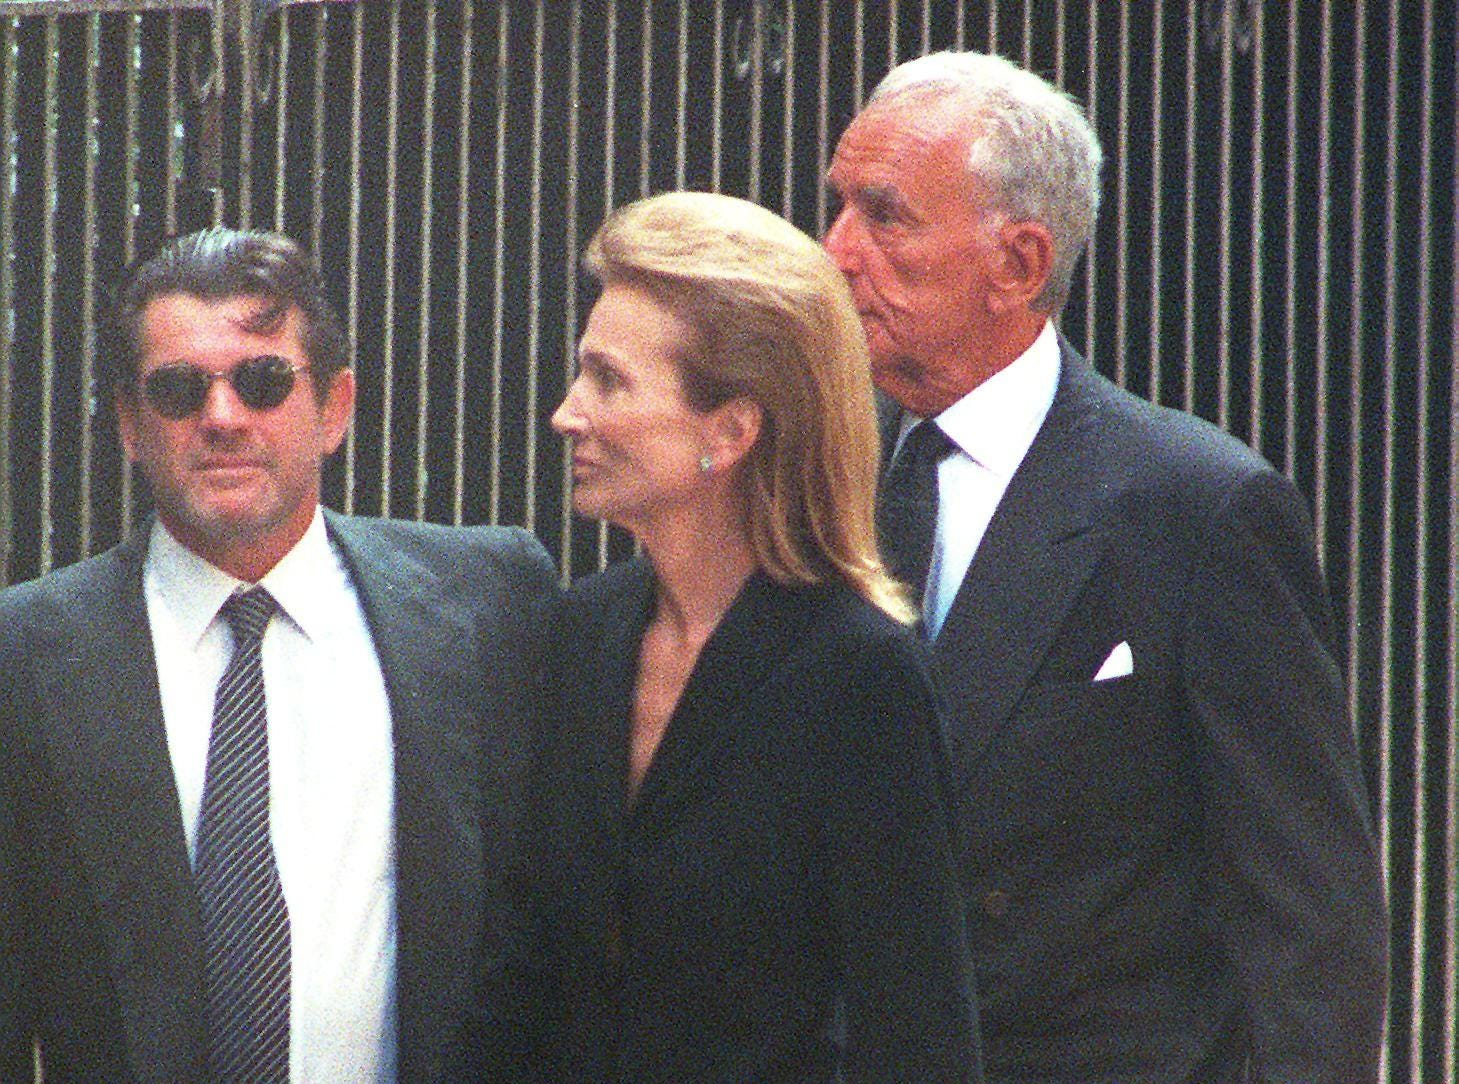 Lee Radziwill, the sister of Jacqueline Kennedy Onassis, arrives at the Church of St. Thomas More for a memorial service for John F. Kennedy Jr. and his wife, Carolyn Bessette Kennedy, who were killed in a plane crash off the coast of Martha's Vineyard nearly a week ago.  Also arriving is Jann Wenner, left, the publisher of Rolling Stone Magazine, who was a friend of Kennedy Jr.'s.